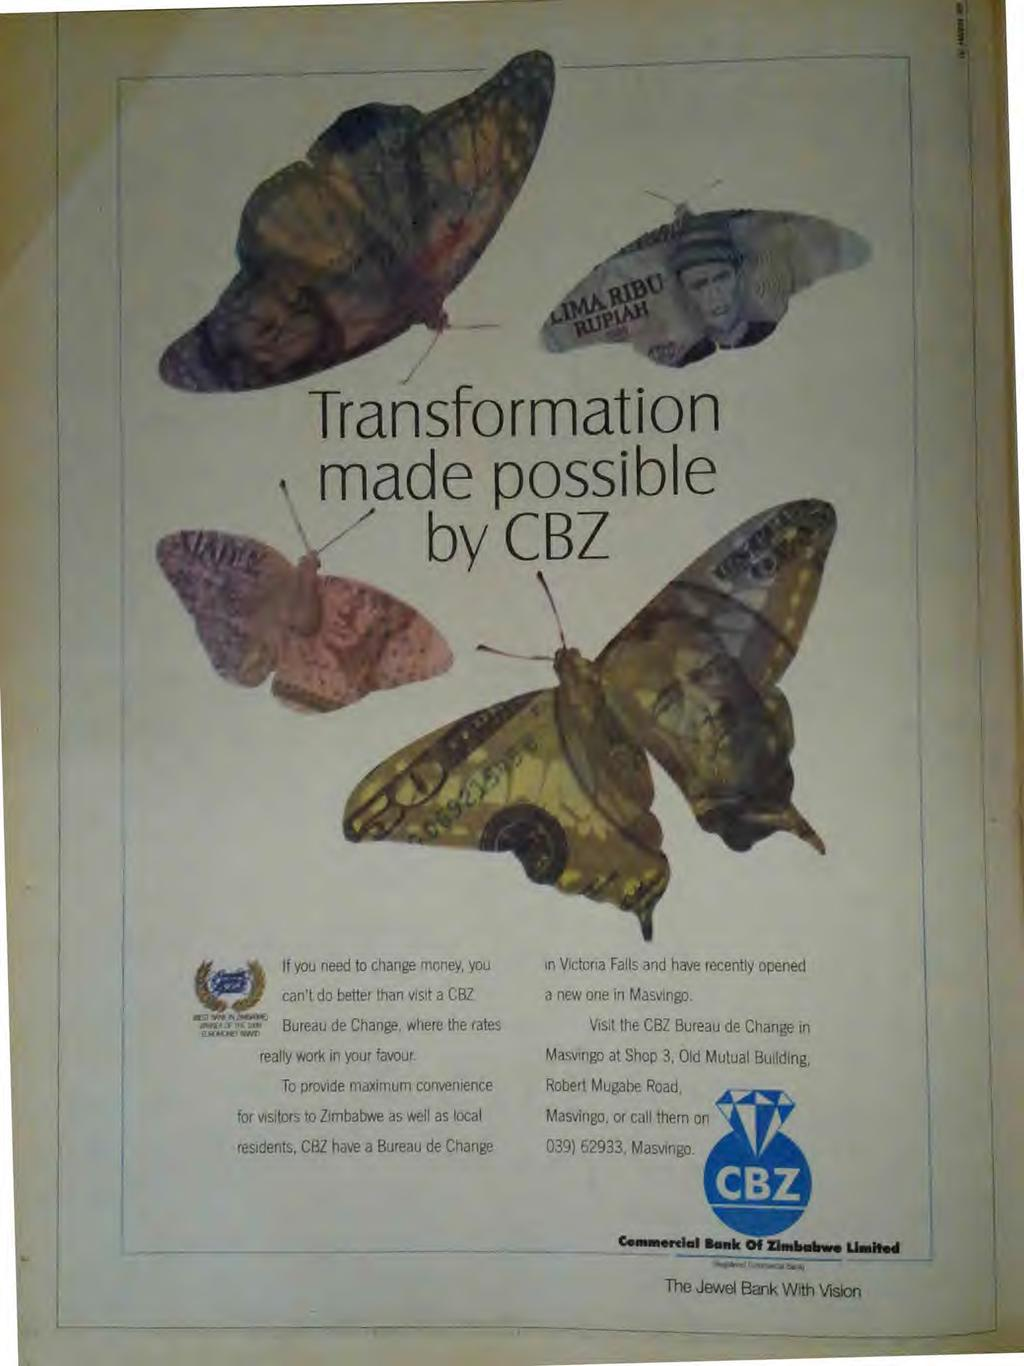 Transformation made possible by CBZ If you need to change money, you can't do better than visit a CBZ Bureau de Change, where the rates really work in your favour.